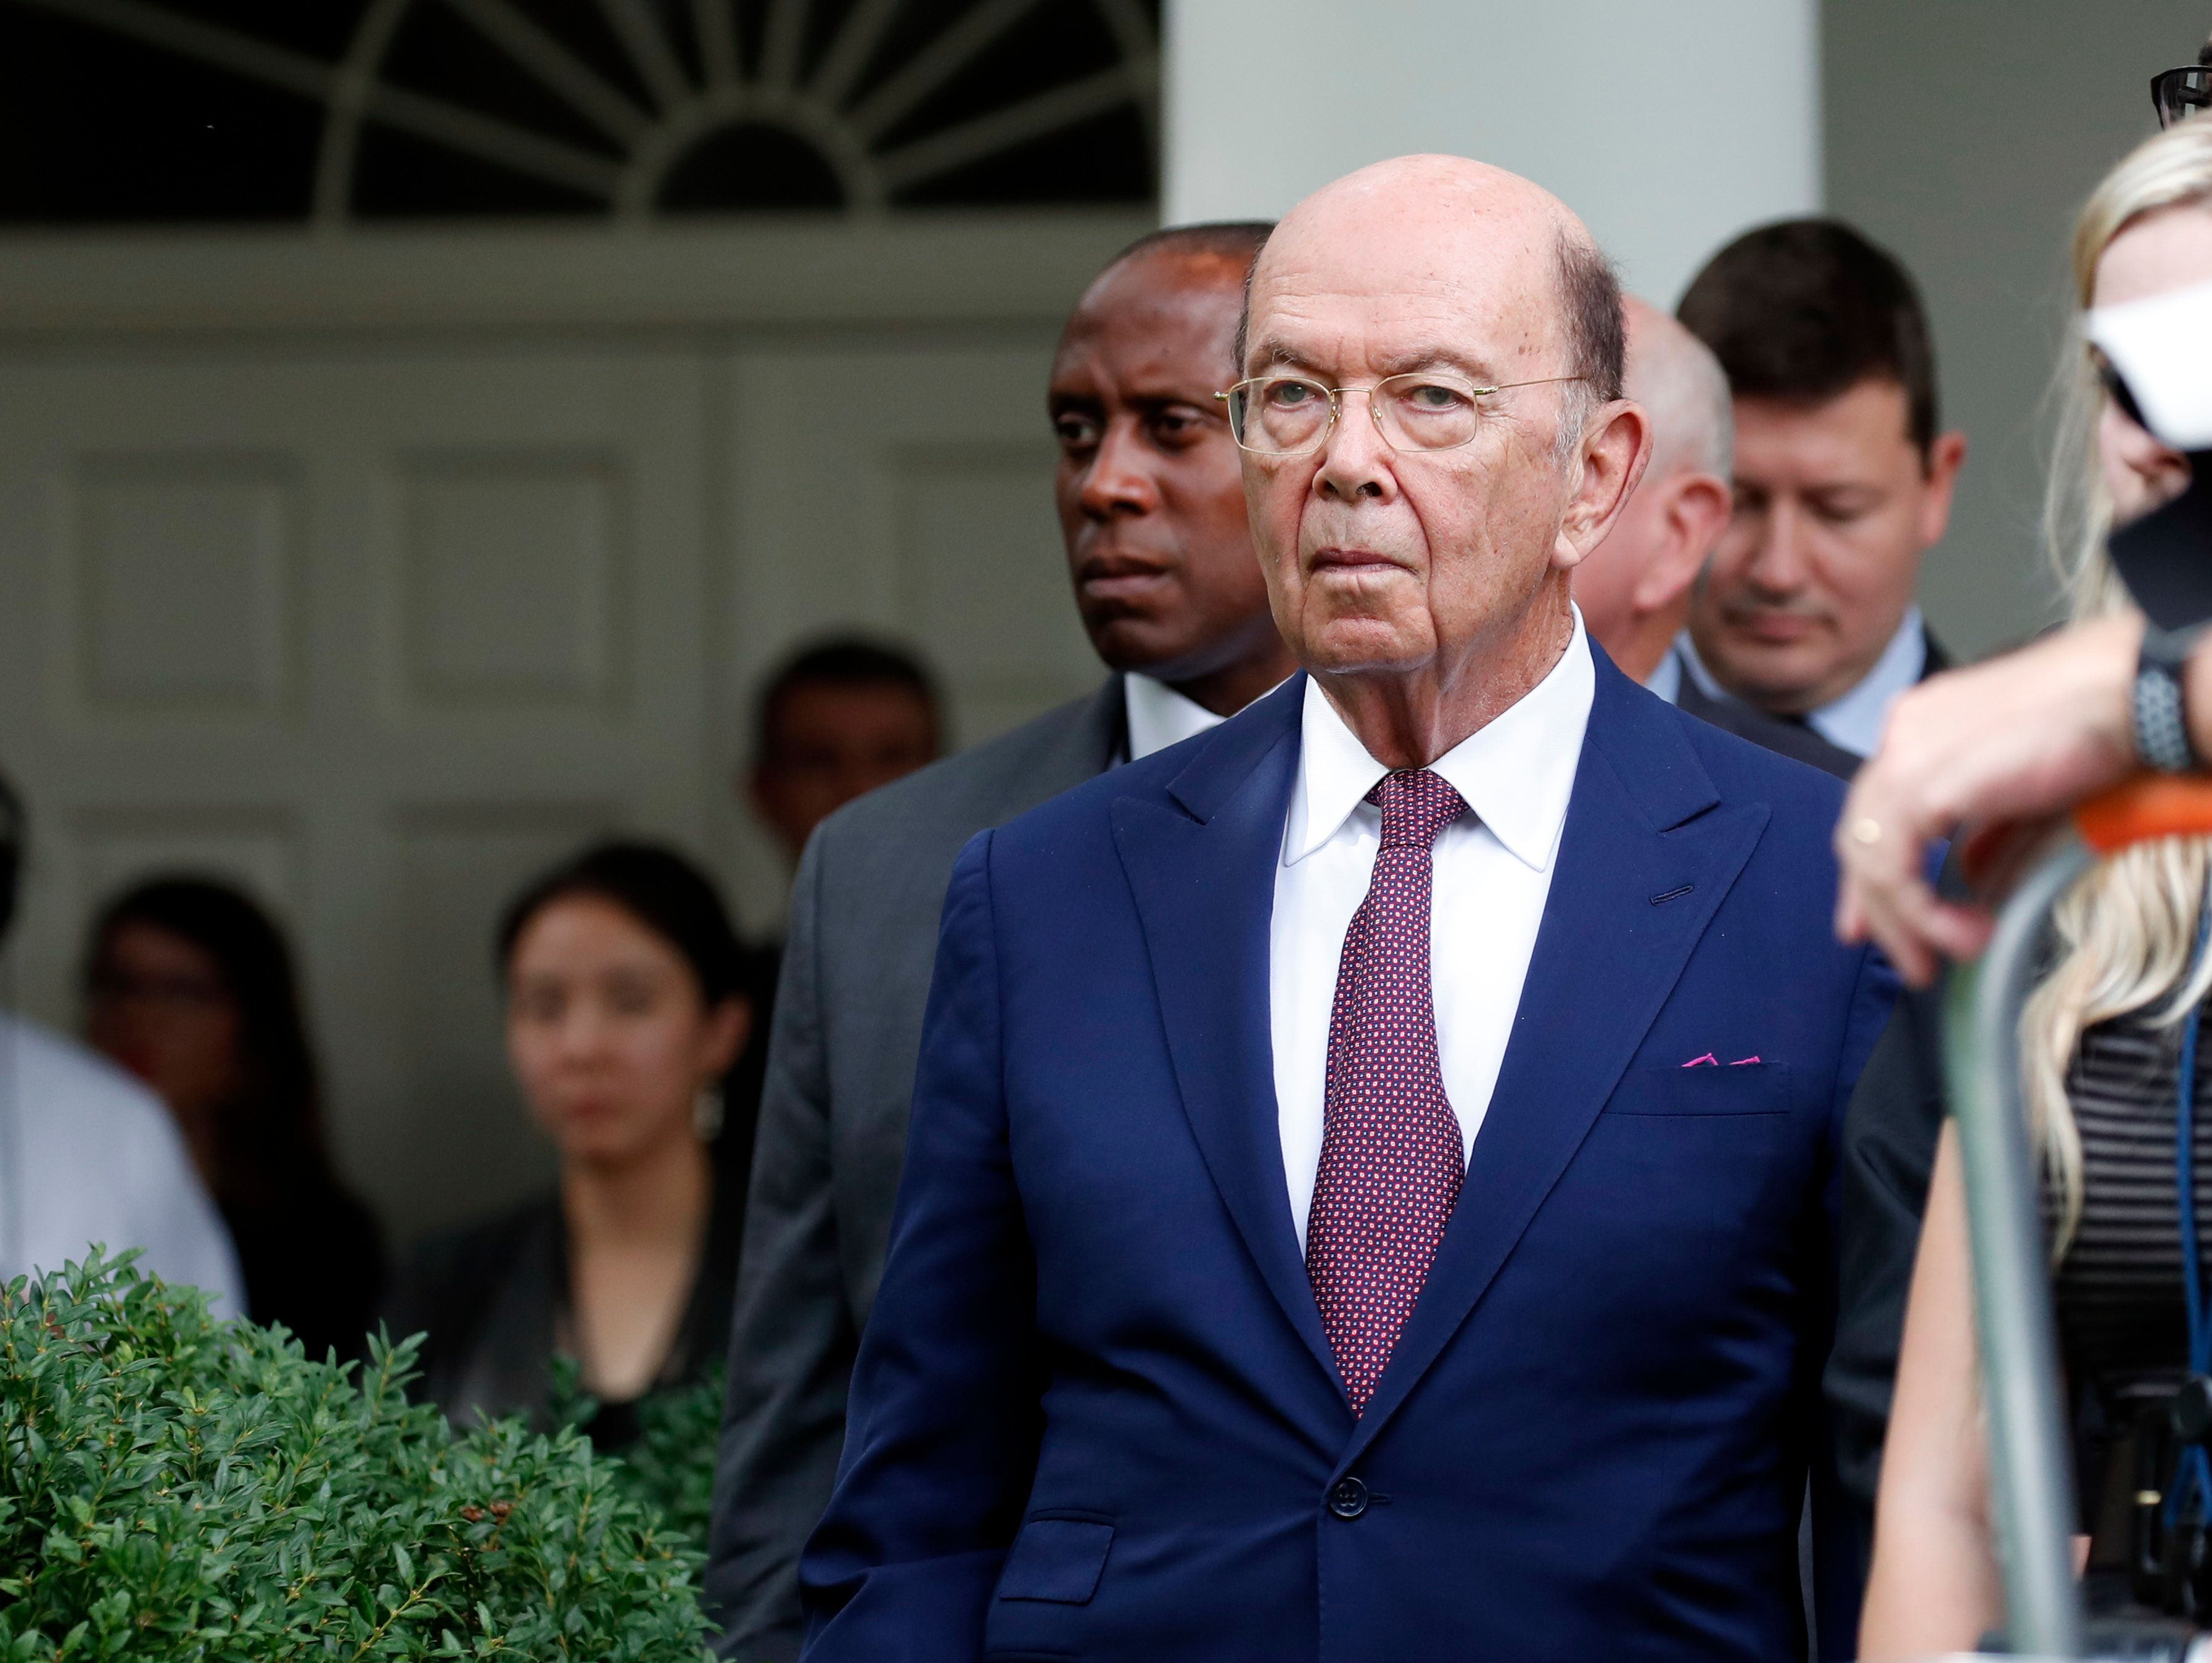 Commerce Secretary Wilbur Ross has changed his story on why his department wants to add a question about citizenship to the&n